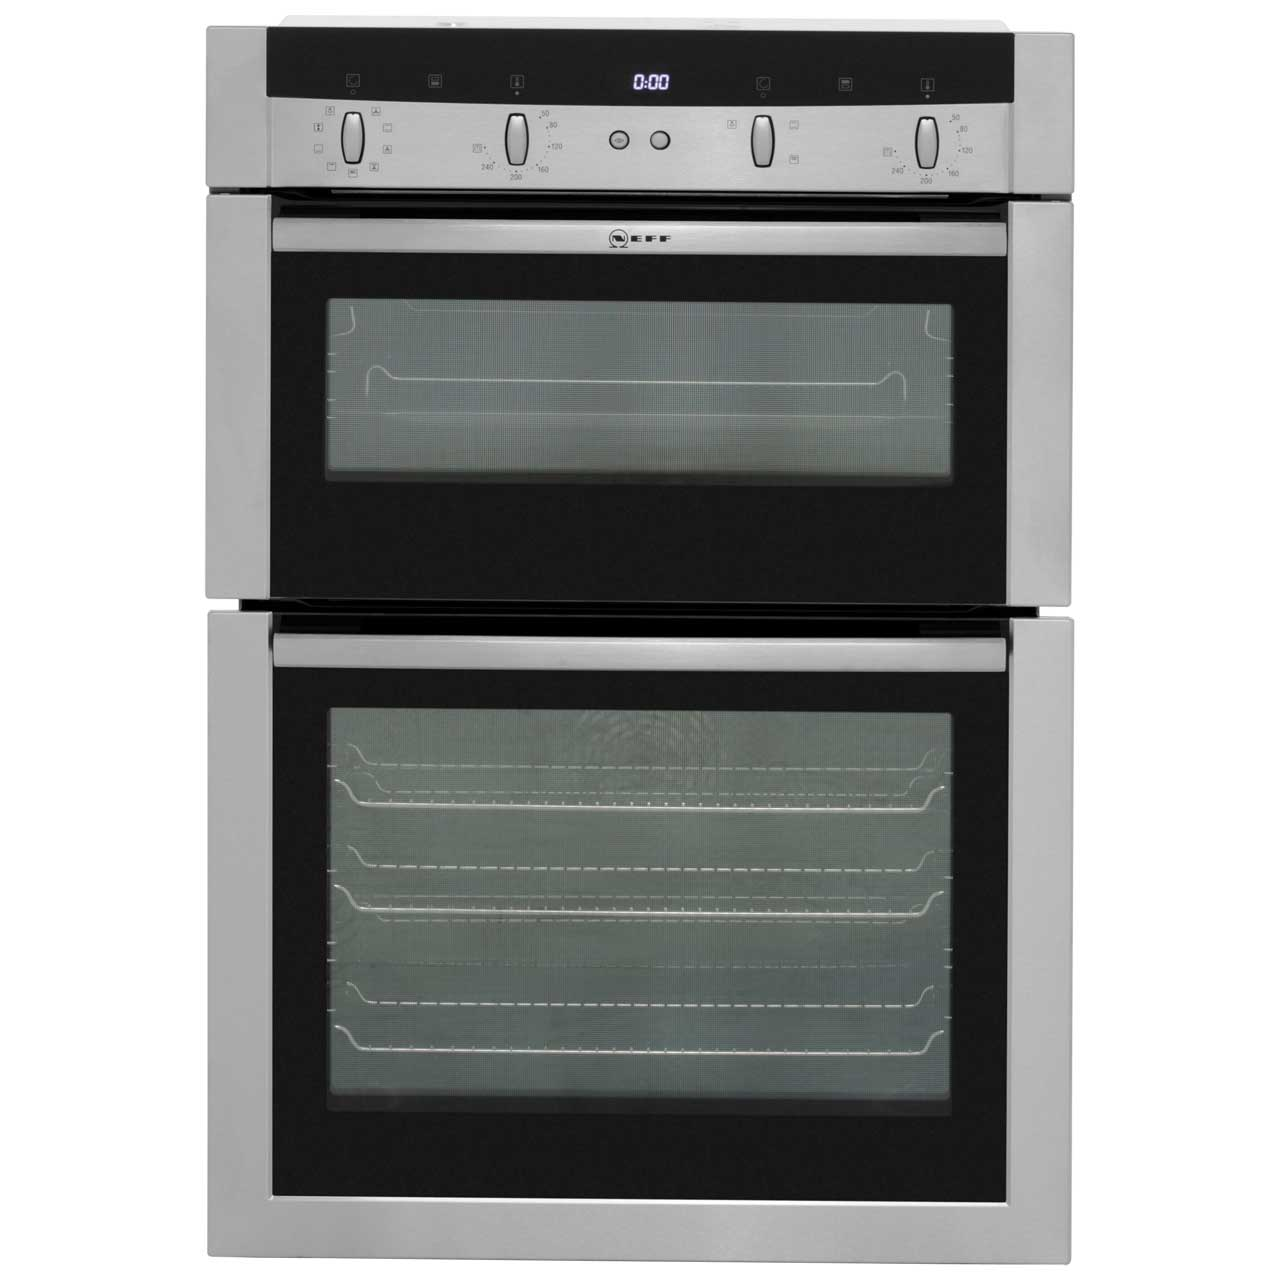 Neff Classic Collection 2 U15M52N3GB Built In Double Oven - Stainless Steel